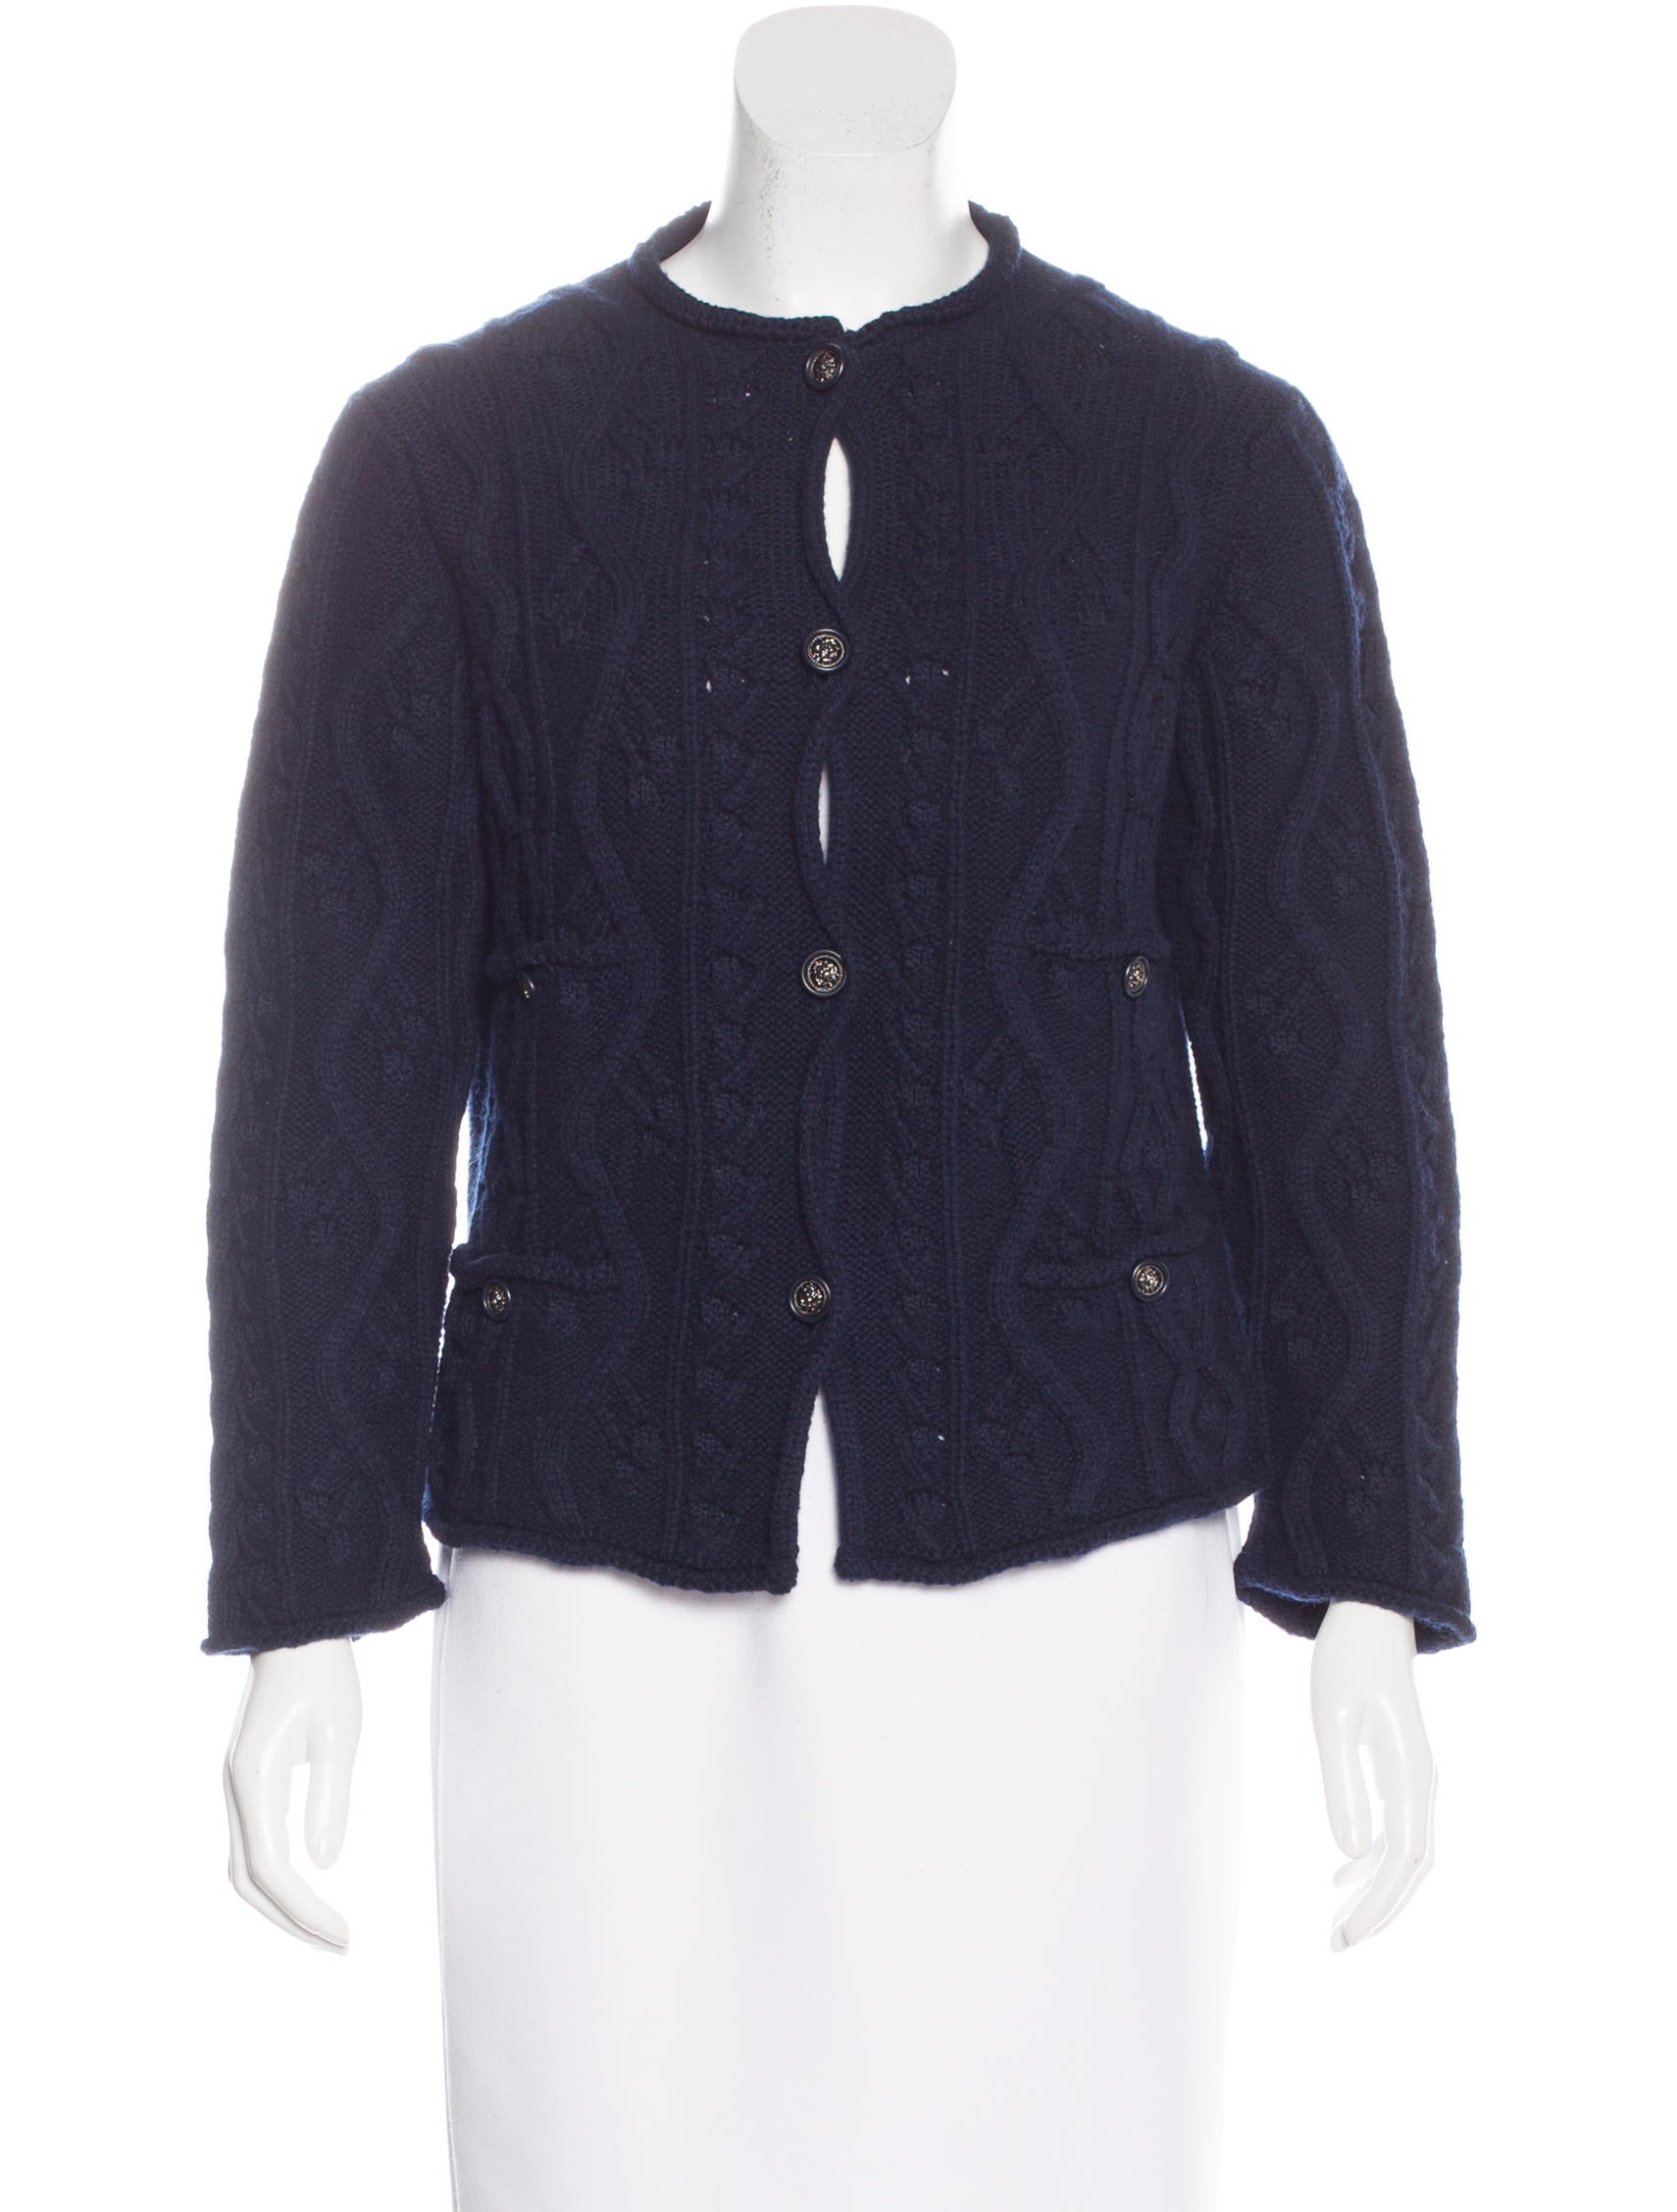 Chanel Cashmere Cable Knit Cardigan - Clothing - CHA156128 The RealReal